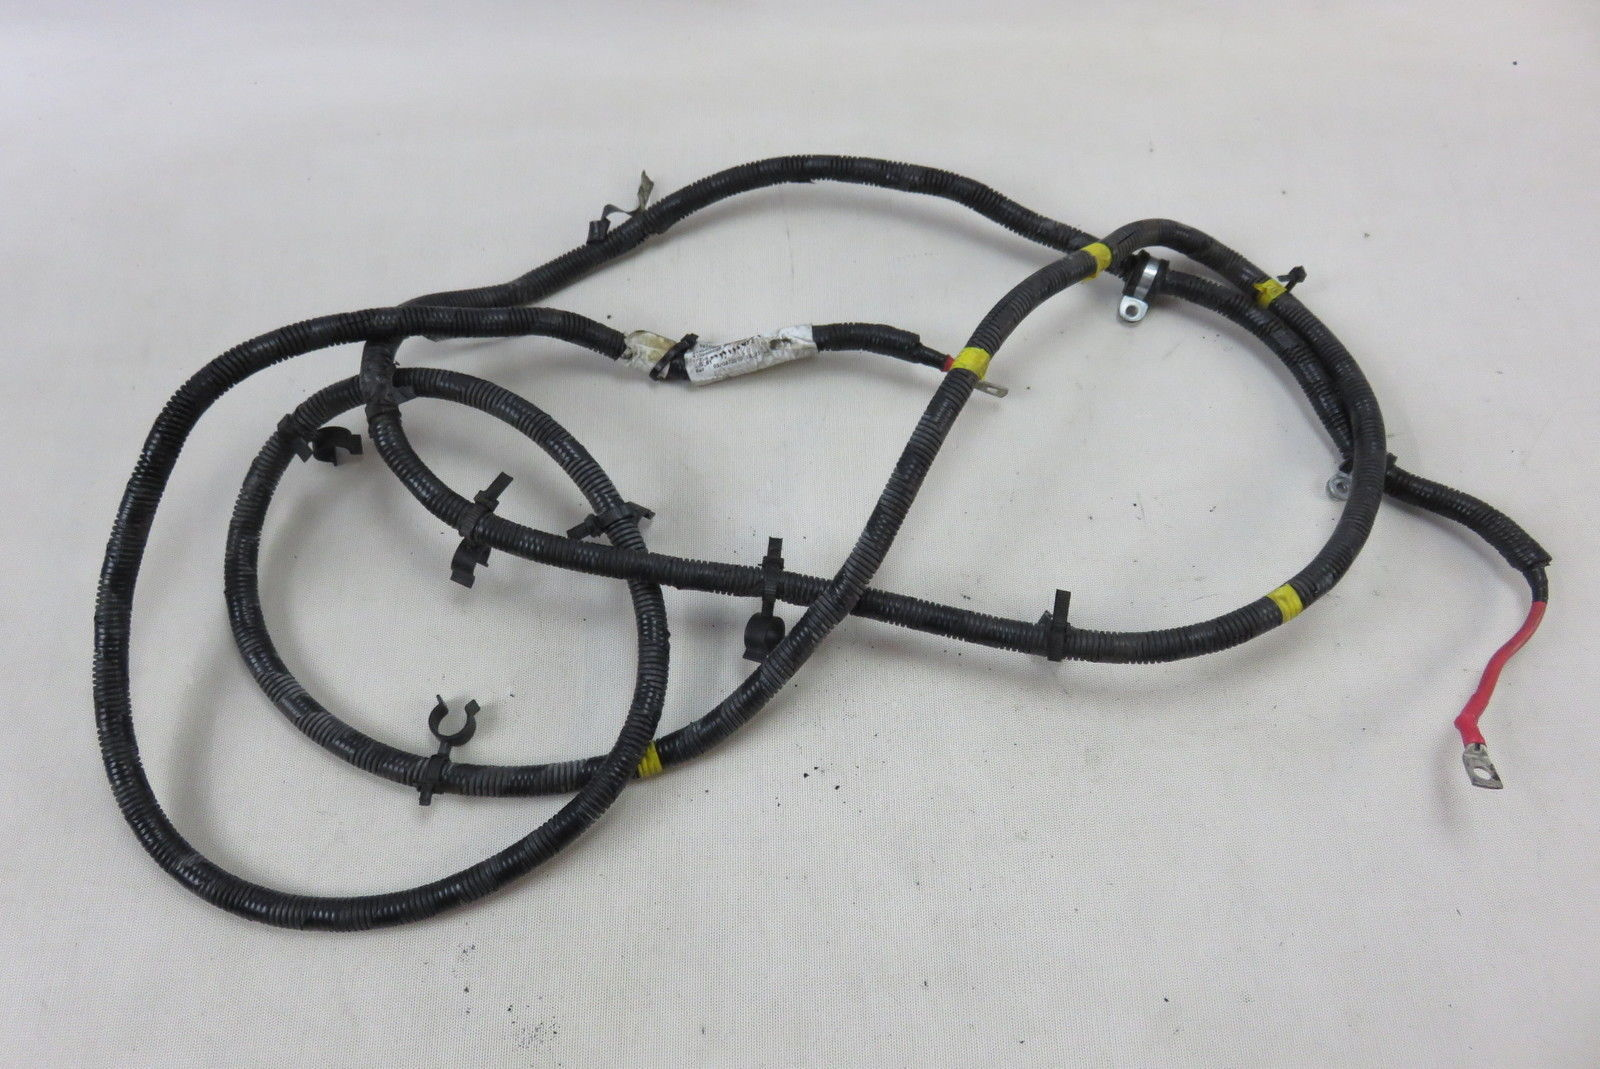 hight resolution of 2011 lotus evora positive stud to fusebox stud battery cable b132m0004f